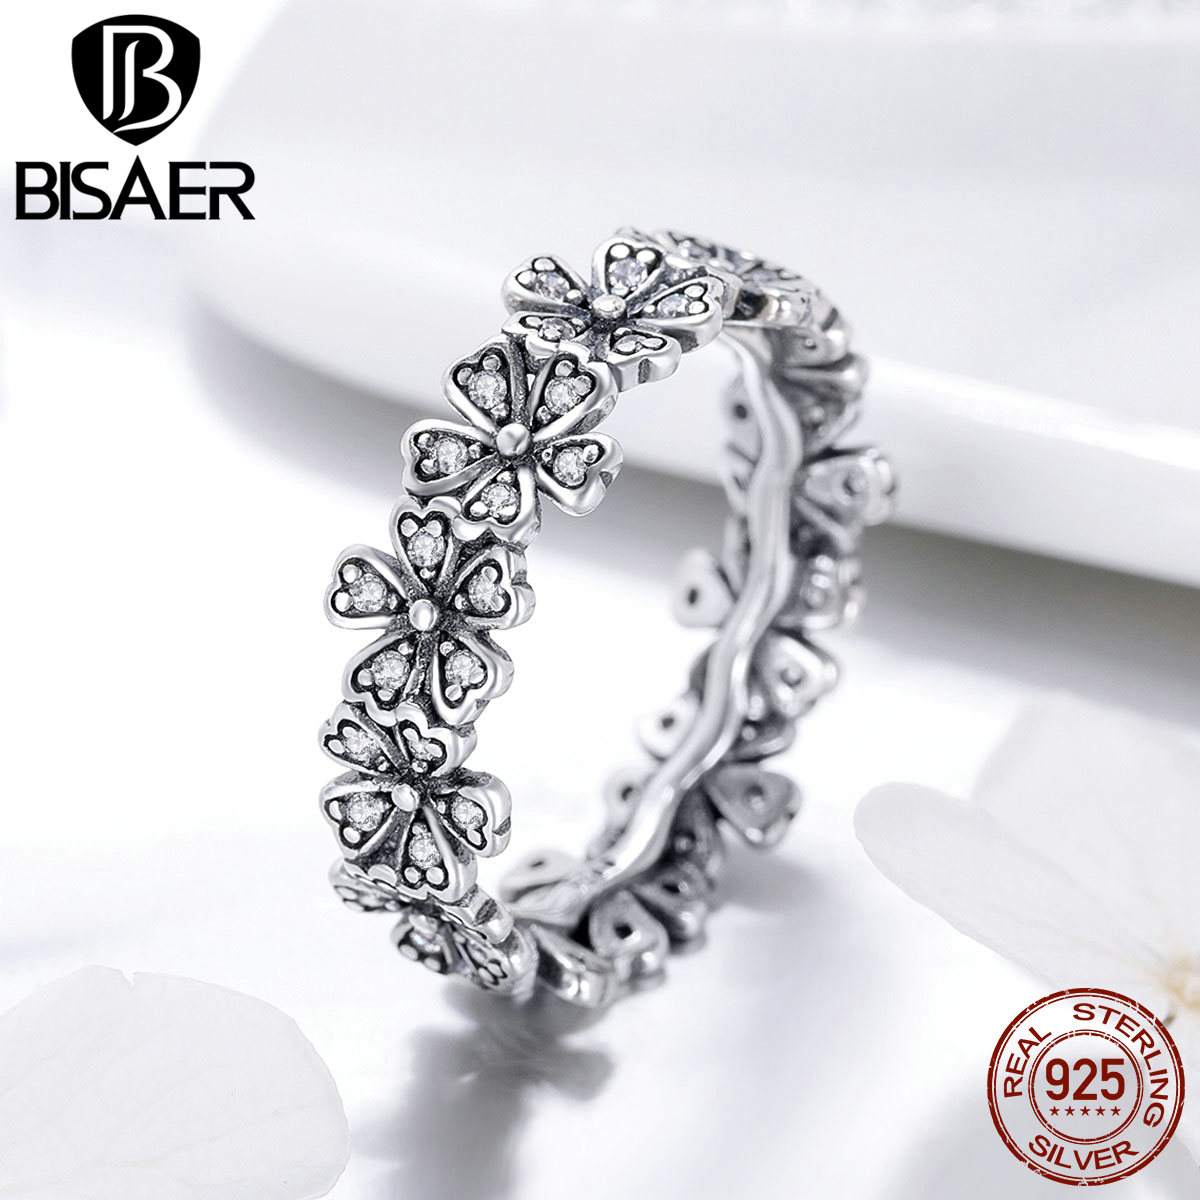 BISAER <font><b>Real</b></font> <font><b>925</b></font> Sterling Silver Romantic Daisy Flower Wedding <font><b>Rings</b></font> <font><b>for</b></font> <font><b>Women</b></font> Fashion Finger <font><b>Ring</b></font> Engagement Jewelry ECR397 image